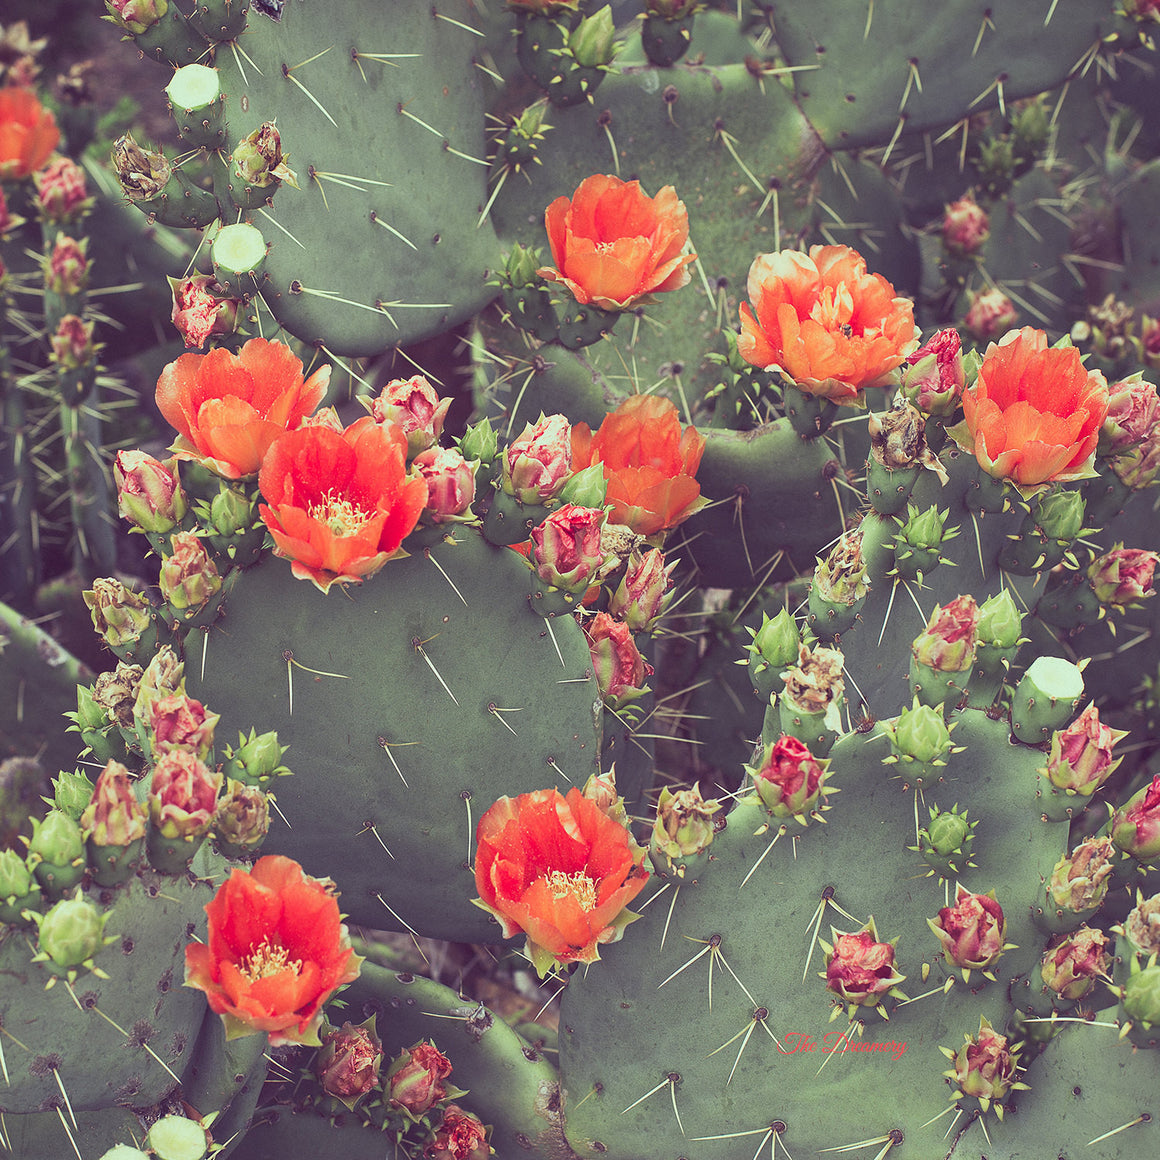 Texas photography, cactus photography, prickly pear, orange decor, vintage retro landscape southwest print bold western decor - Flamenco